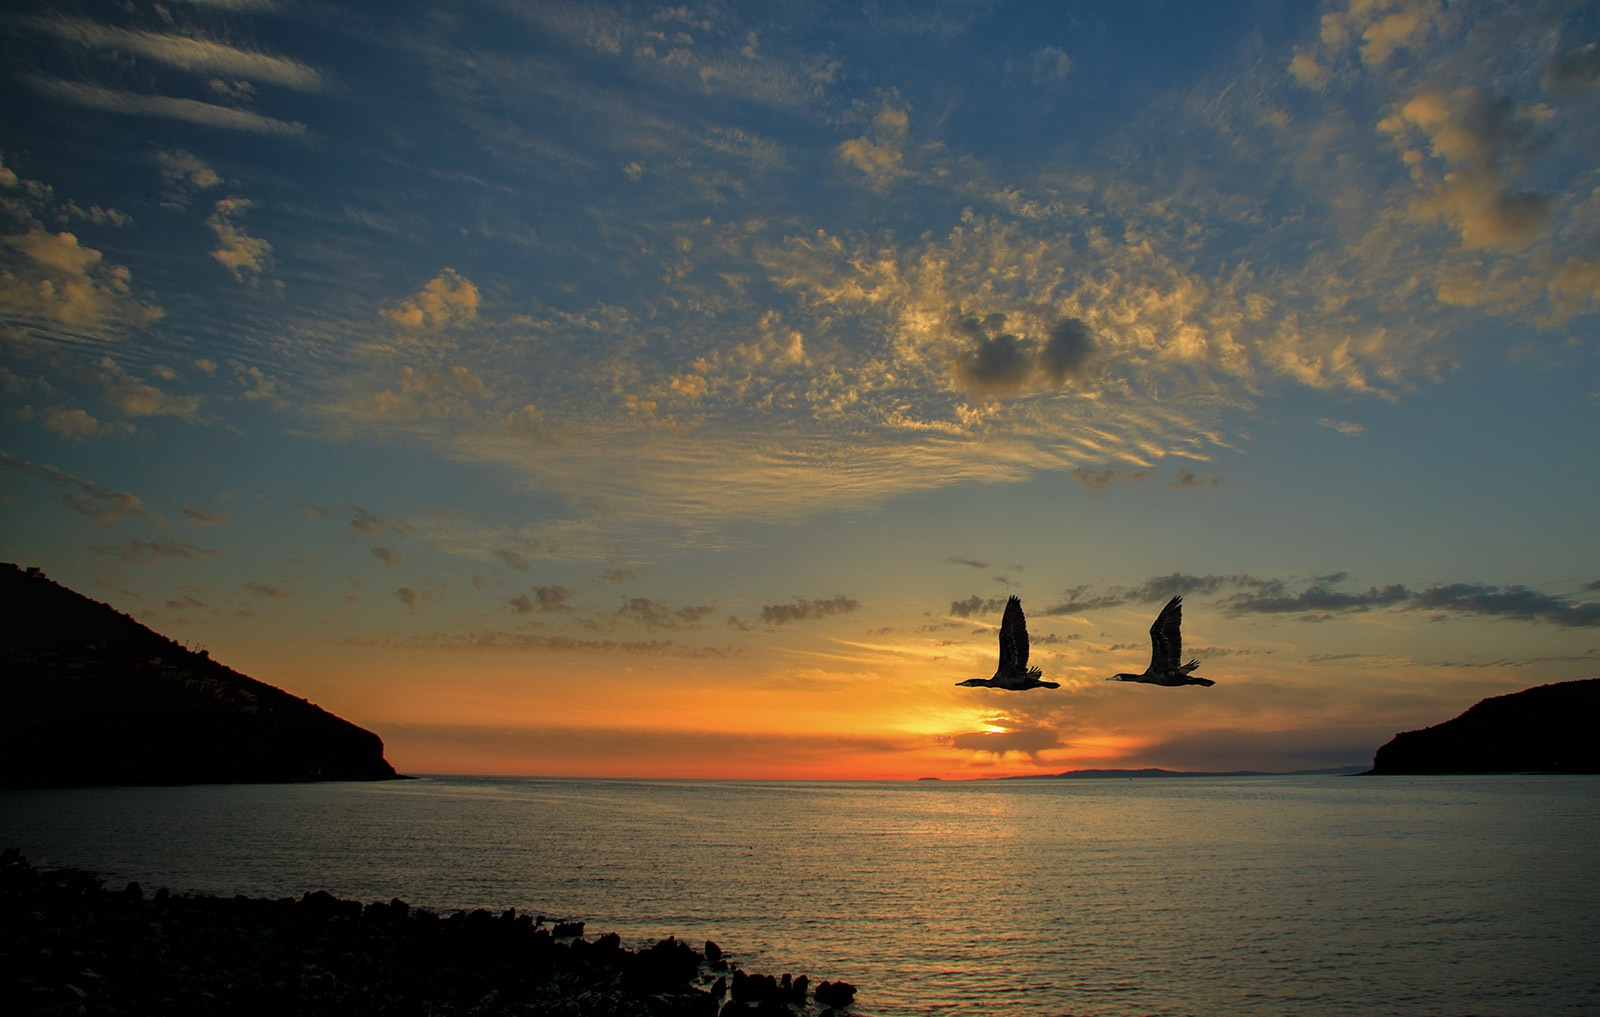 Open your wings and make your dream come true!!! by Sotiris Siomis